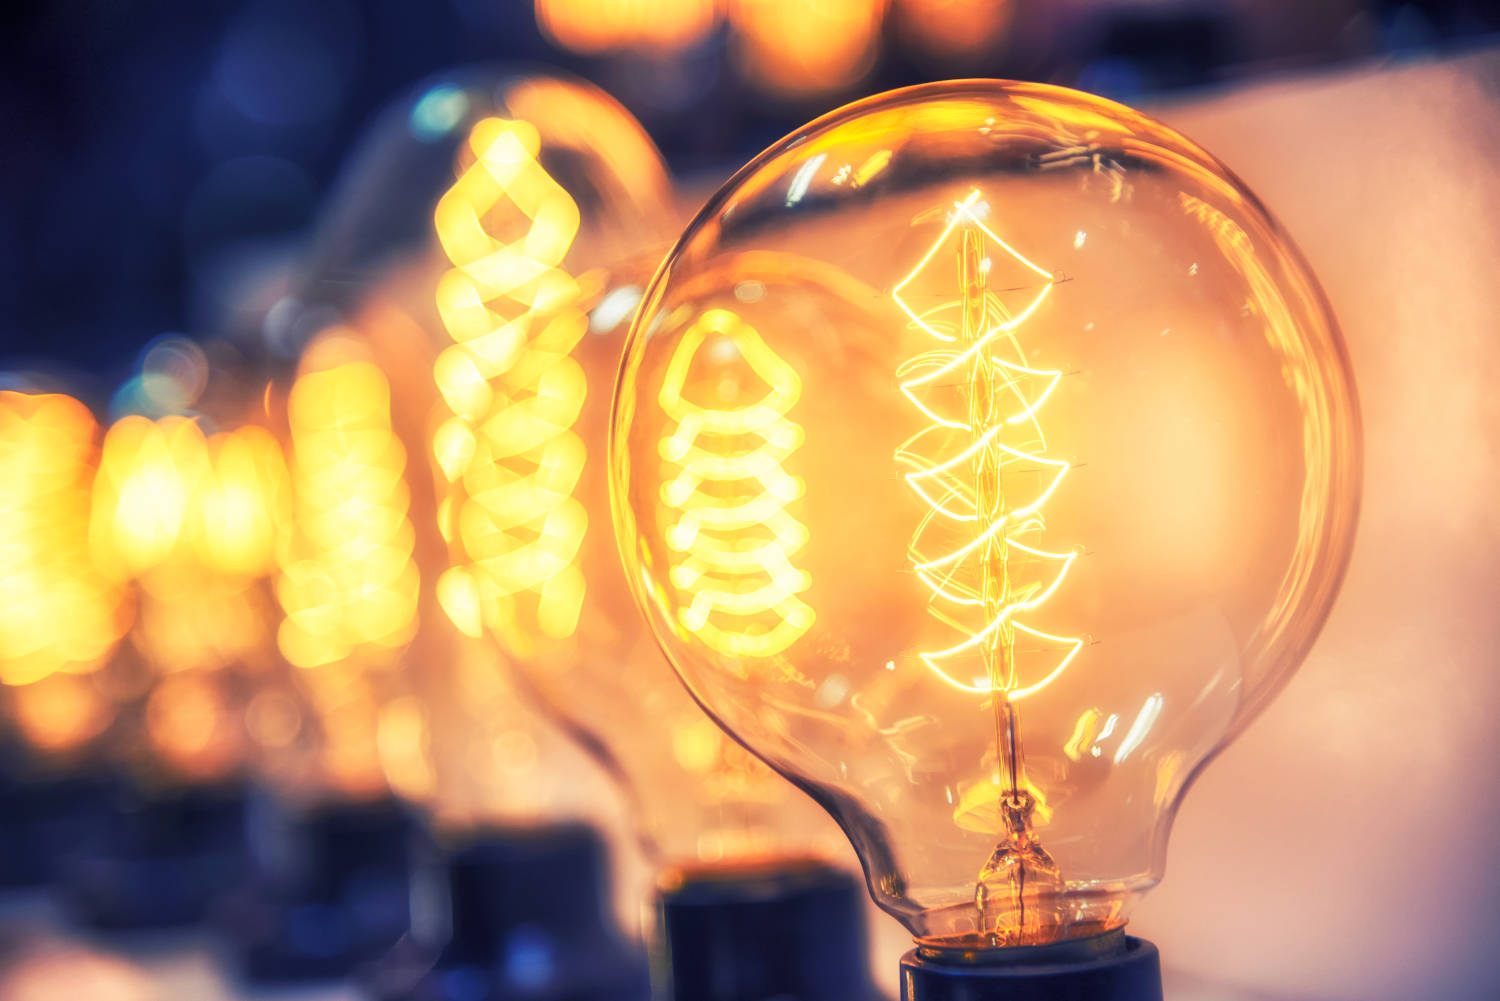 Light bulb electricity costs can be calculated by finding the kilowatt-hours a light bulb uses and multiplying by the cost per kilowatt-hour